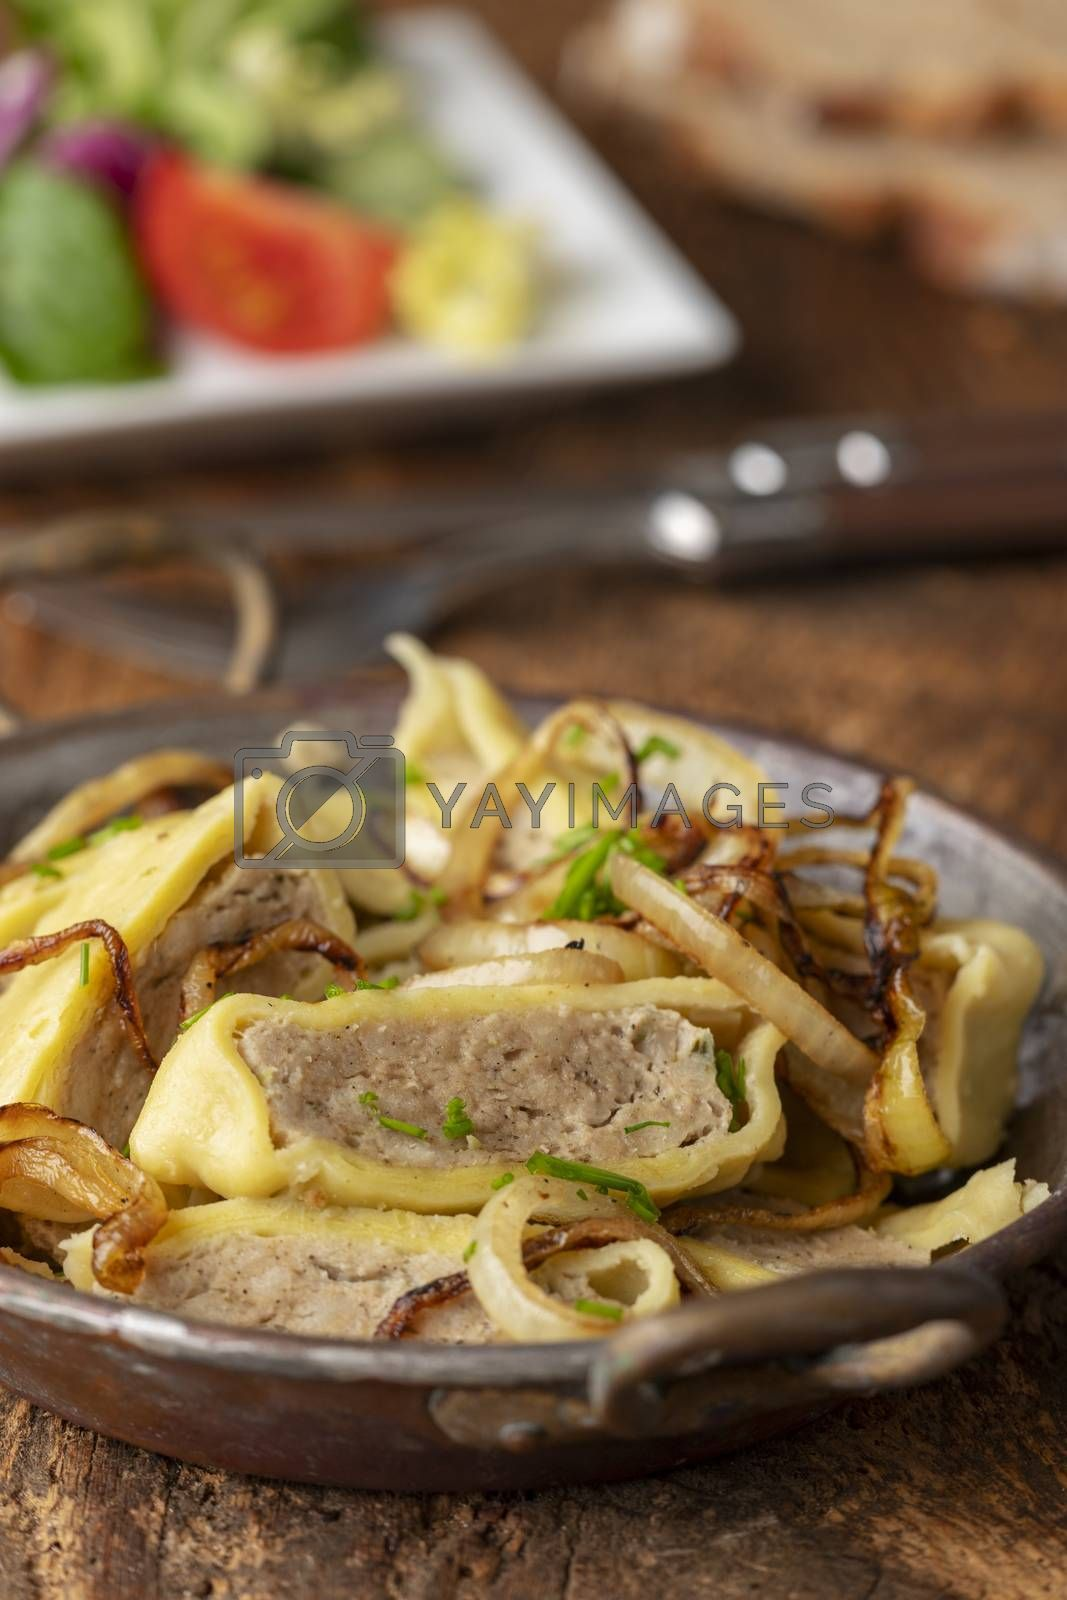 swabian maultasche with onions in a pan  by bernjuer